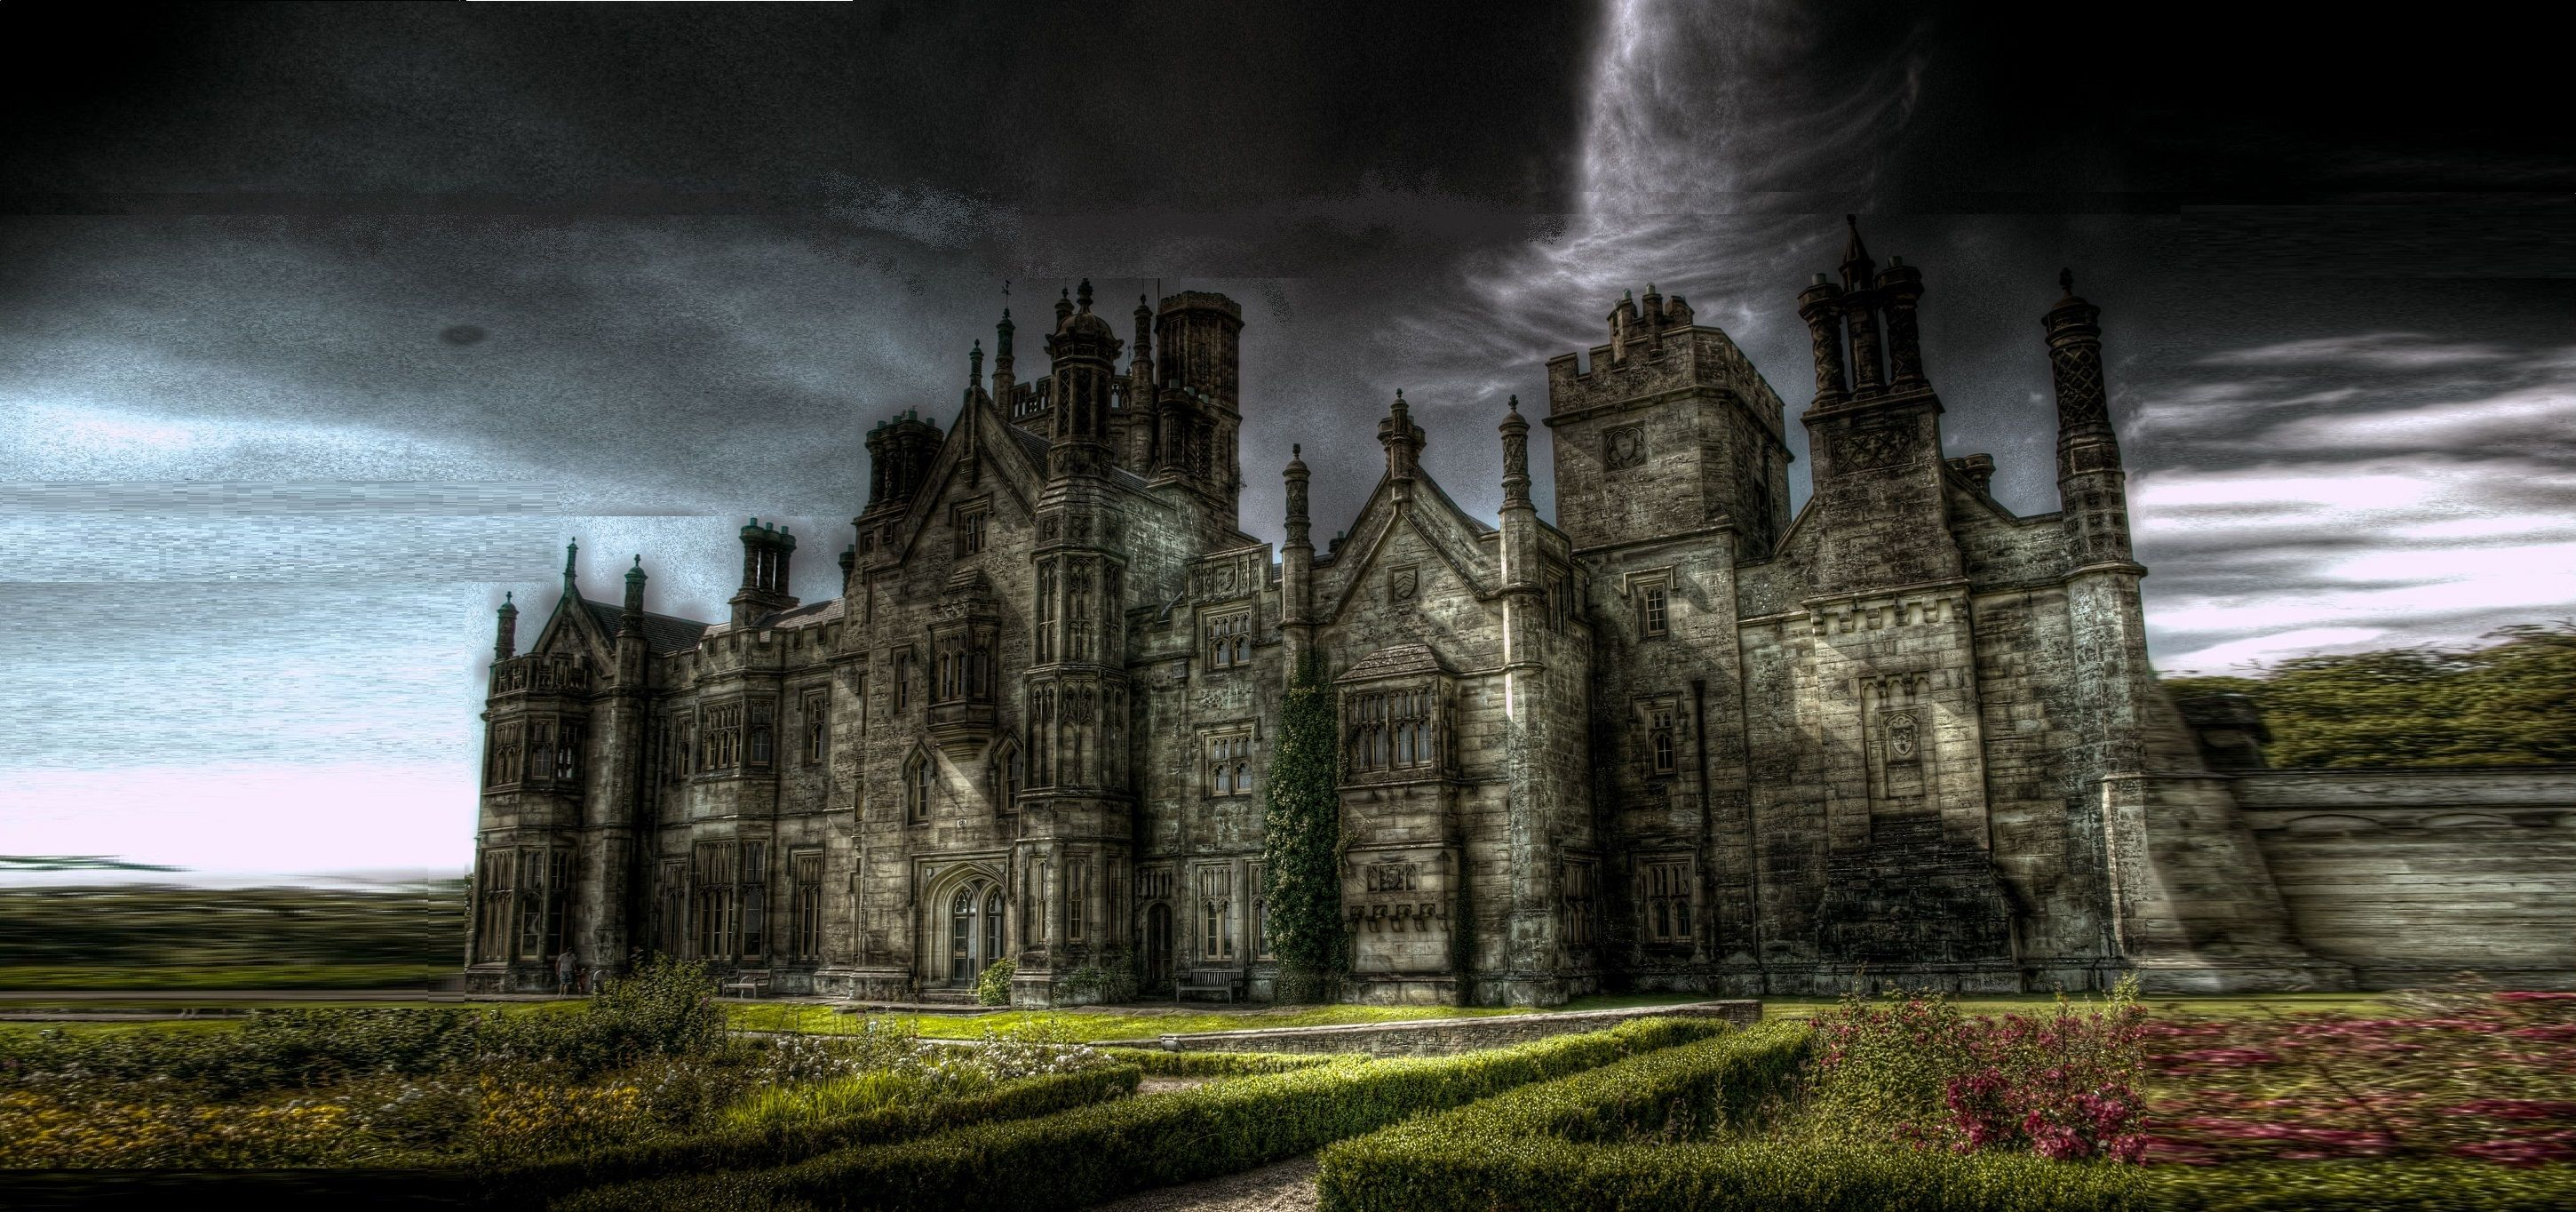 wales-margam-castle-000-haunted-journeys